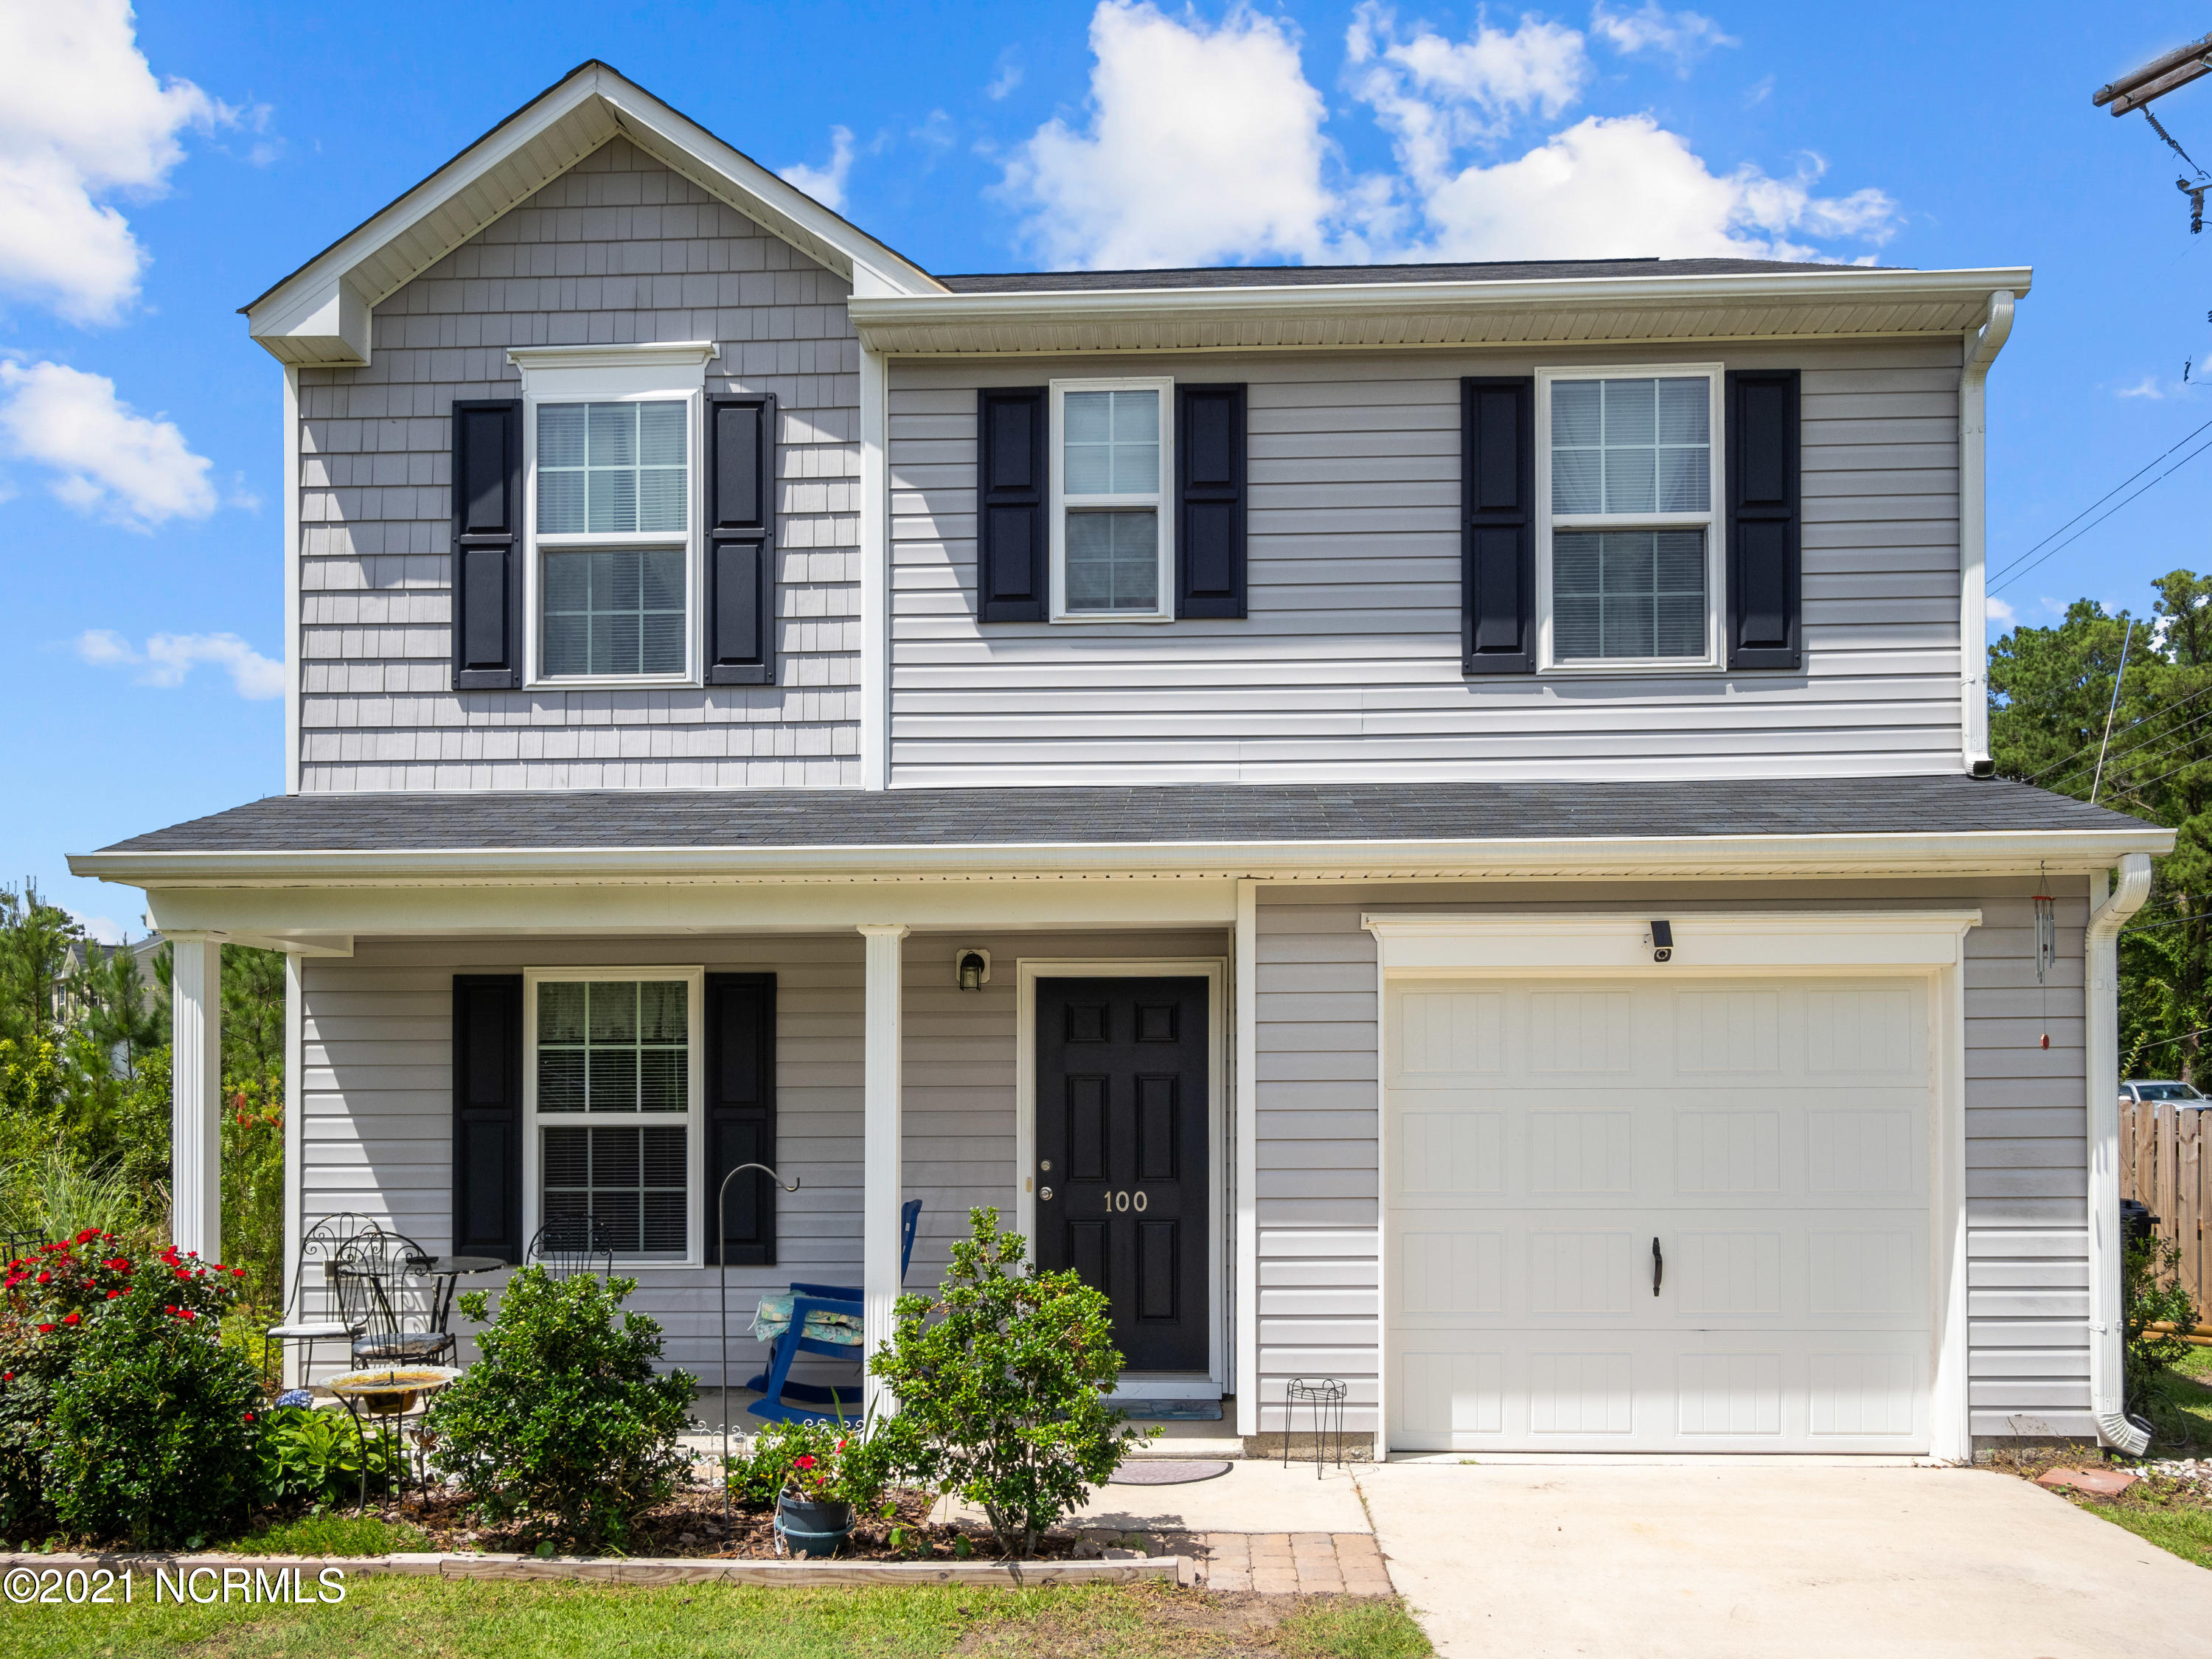 Welcome to The Reserve at Holly Ridge! This 2 story home is only 4 years old features a large .43 acre fenced in lot, a 1 car garage and is tucked back in the neighborhood with minimal through traffic. On the main level, you'll find the open living room with new LVP flooring and a ceiling fan, the kitchen with backsplash and a pantry and an adjoining dining area, the laundry room and a half bathroom.  Upstairs you'll find 3 bedrooms including the master bedroom with a walk-in closet, ceiling fan and master bath with dual vanities. There's also another full bathroom upstairs. No gas - all electric appliances! Original roof. HVAC is still under warranty, per seller. Just a short 8 minutes from Surf City, 20 mins from Camp Lejeune, and 20 minutes from Topsail Beach. The seller is offering a 1 year Americas Preferred Home Warranty for peace of mind! There is no longer an active termite bond on the property, but the property is prepped for Home Team servicing. Seller intends to take the stove.